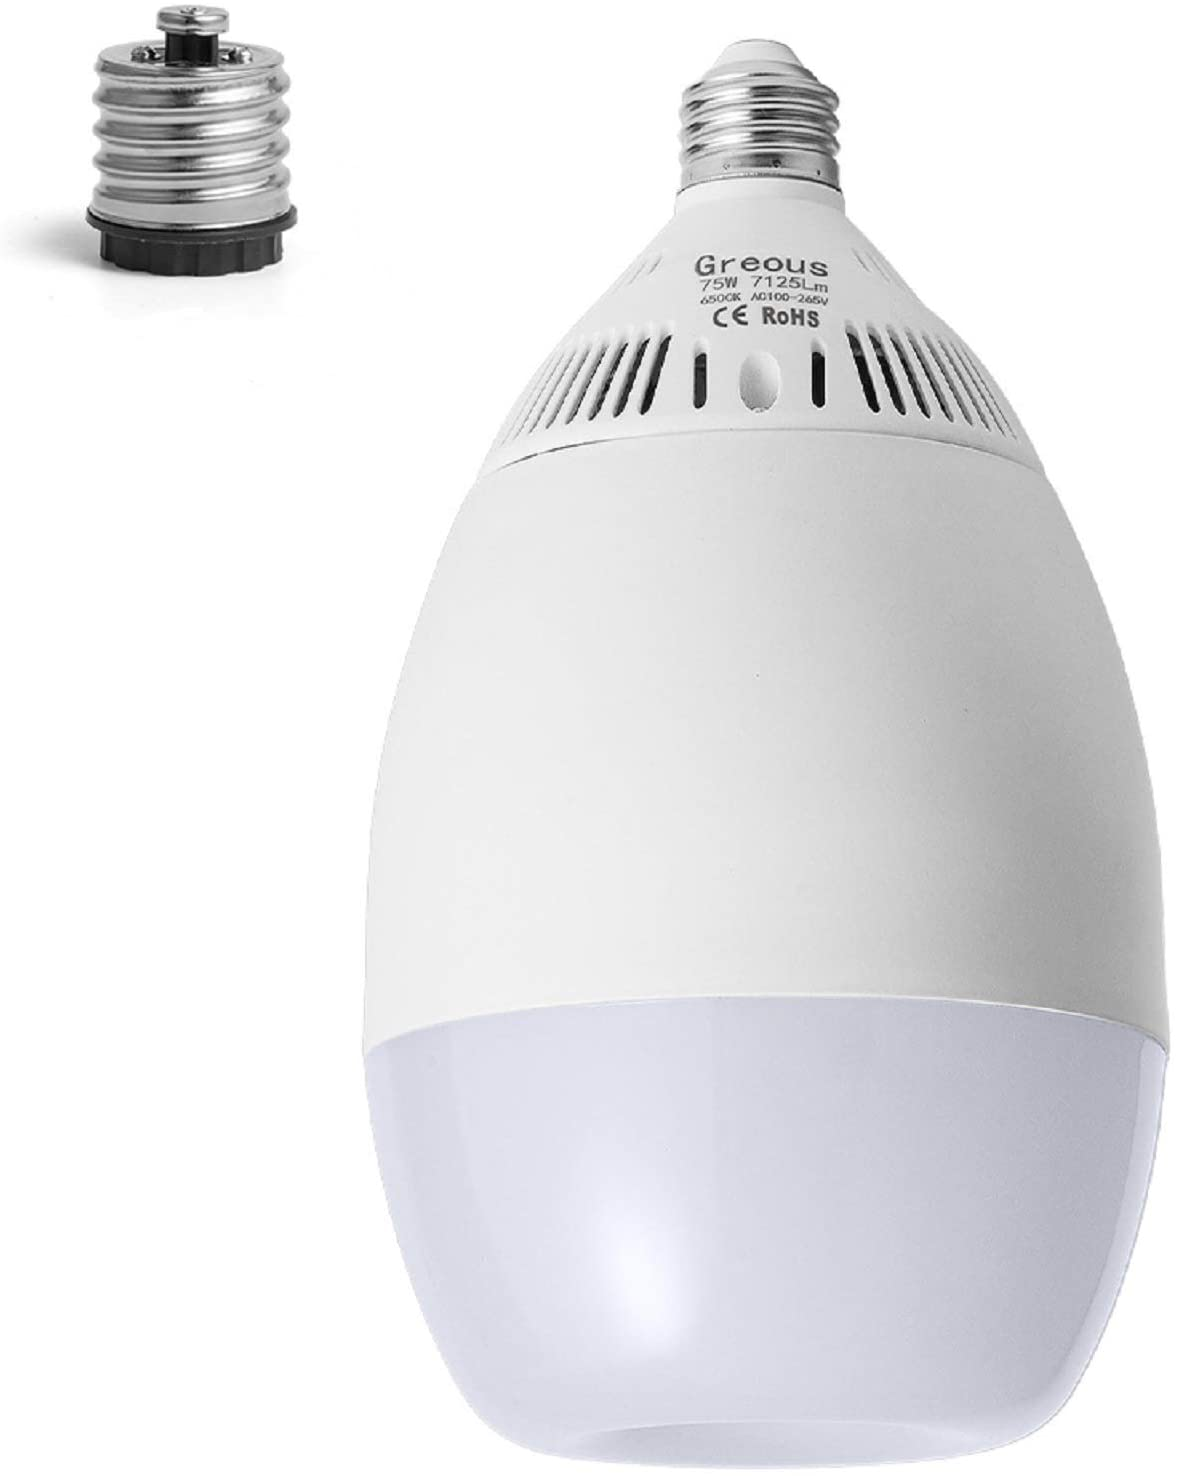 600W-650W Equivalent Super Bright LED Light Bulb, High Lumen 7125lm, 75W 6500K Bright Cool White,for Garage,Barn,Warehouse,Basement,Large Area Lighting,Workshop